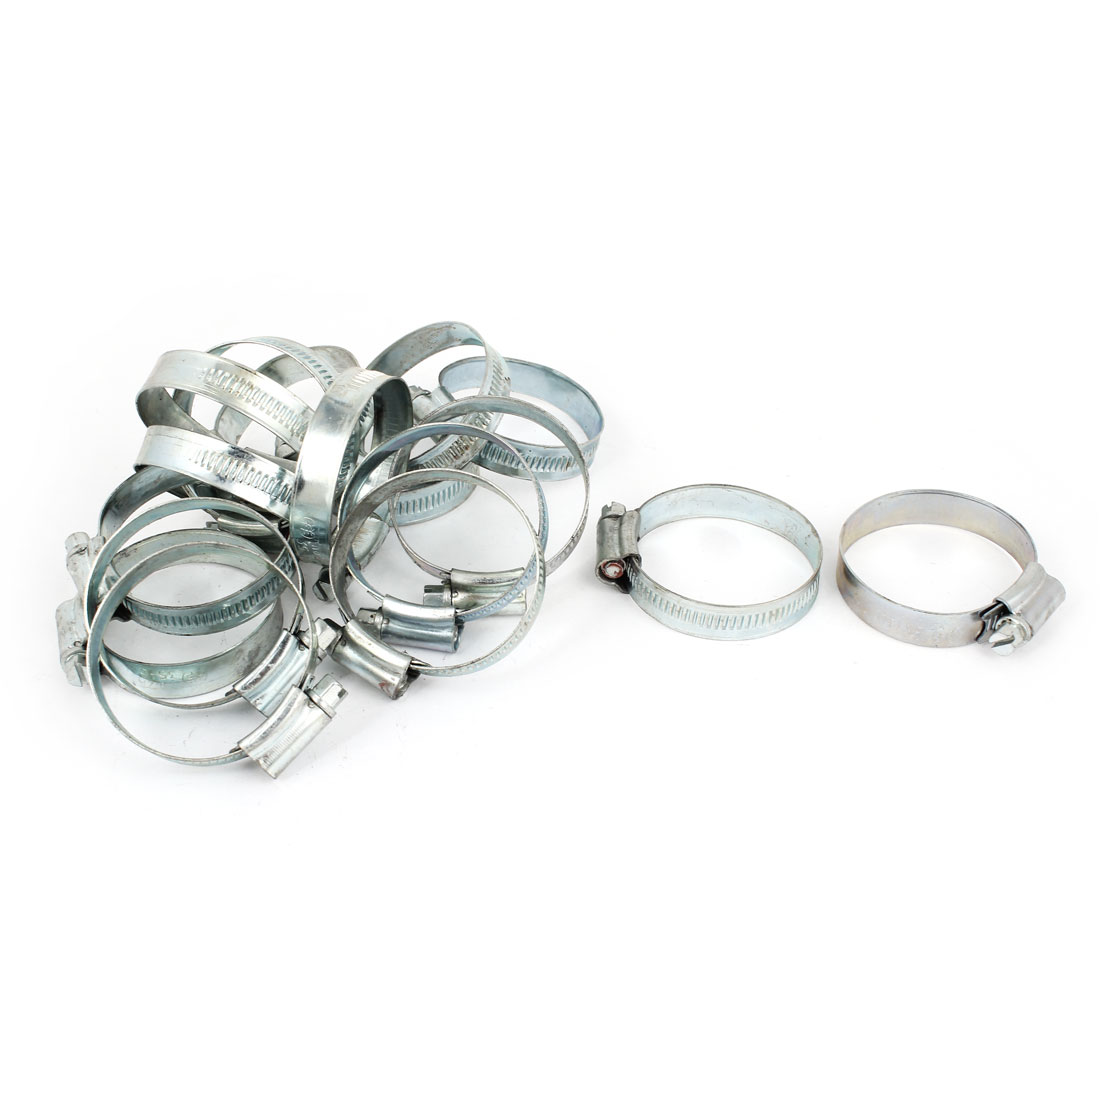 Silver Tone 35 - 51mm Adjustable Worm Gear Hose Pipe Fitting Clamps 20 Pcs